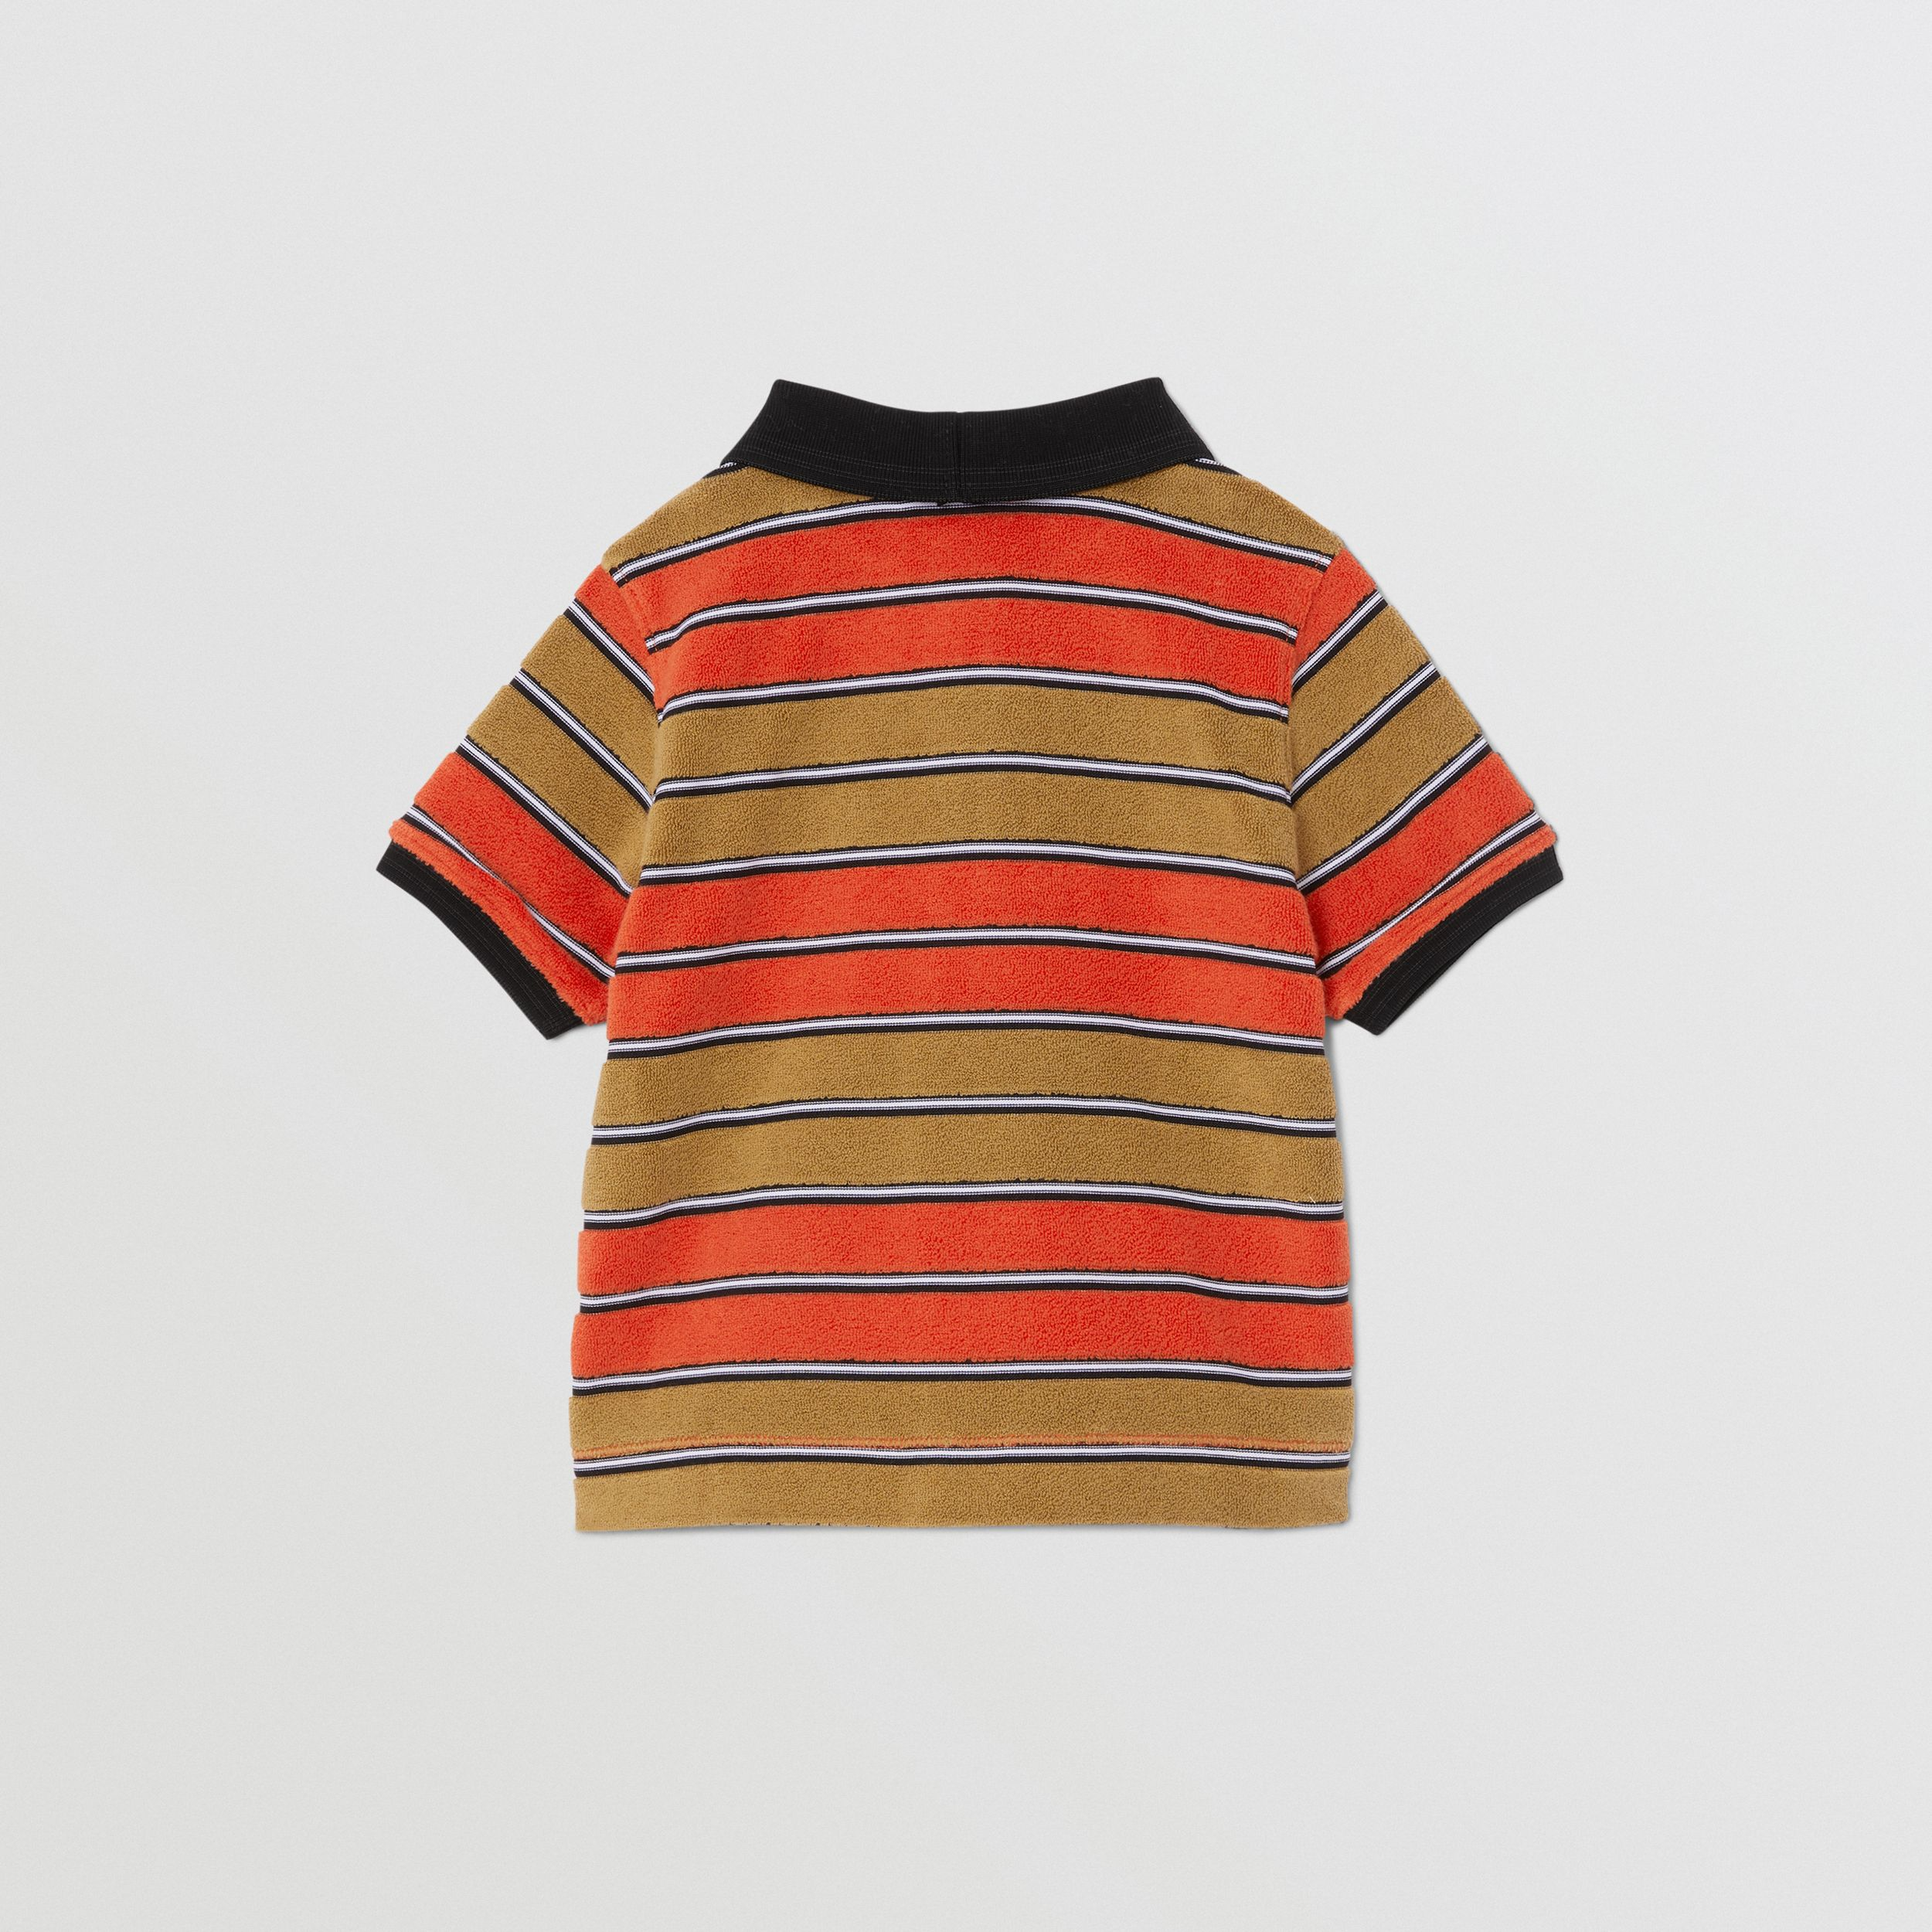 Logo Appliqué Striped Towelling Polo Shirt in Vermilion Red - Children | Burberry United Kingdom - 4